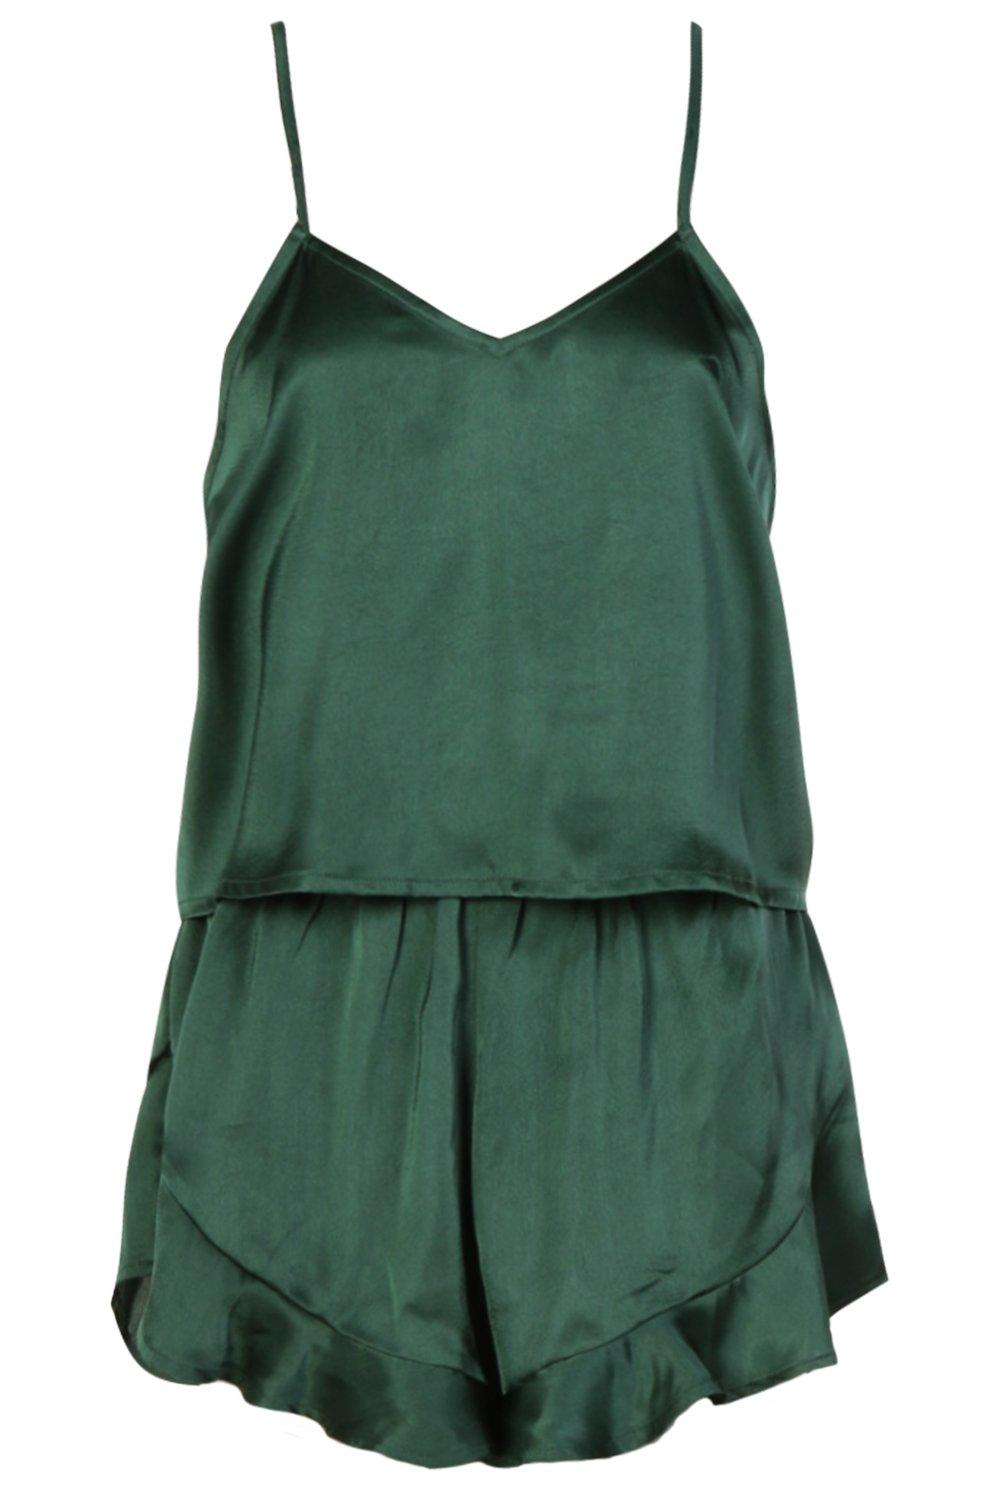 Vest green amp; Set Short dark Satin xqdw07Hnq